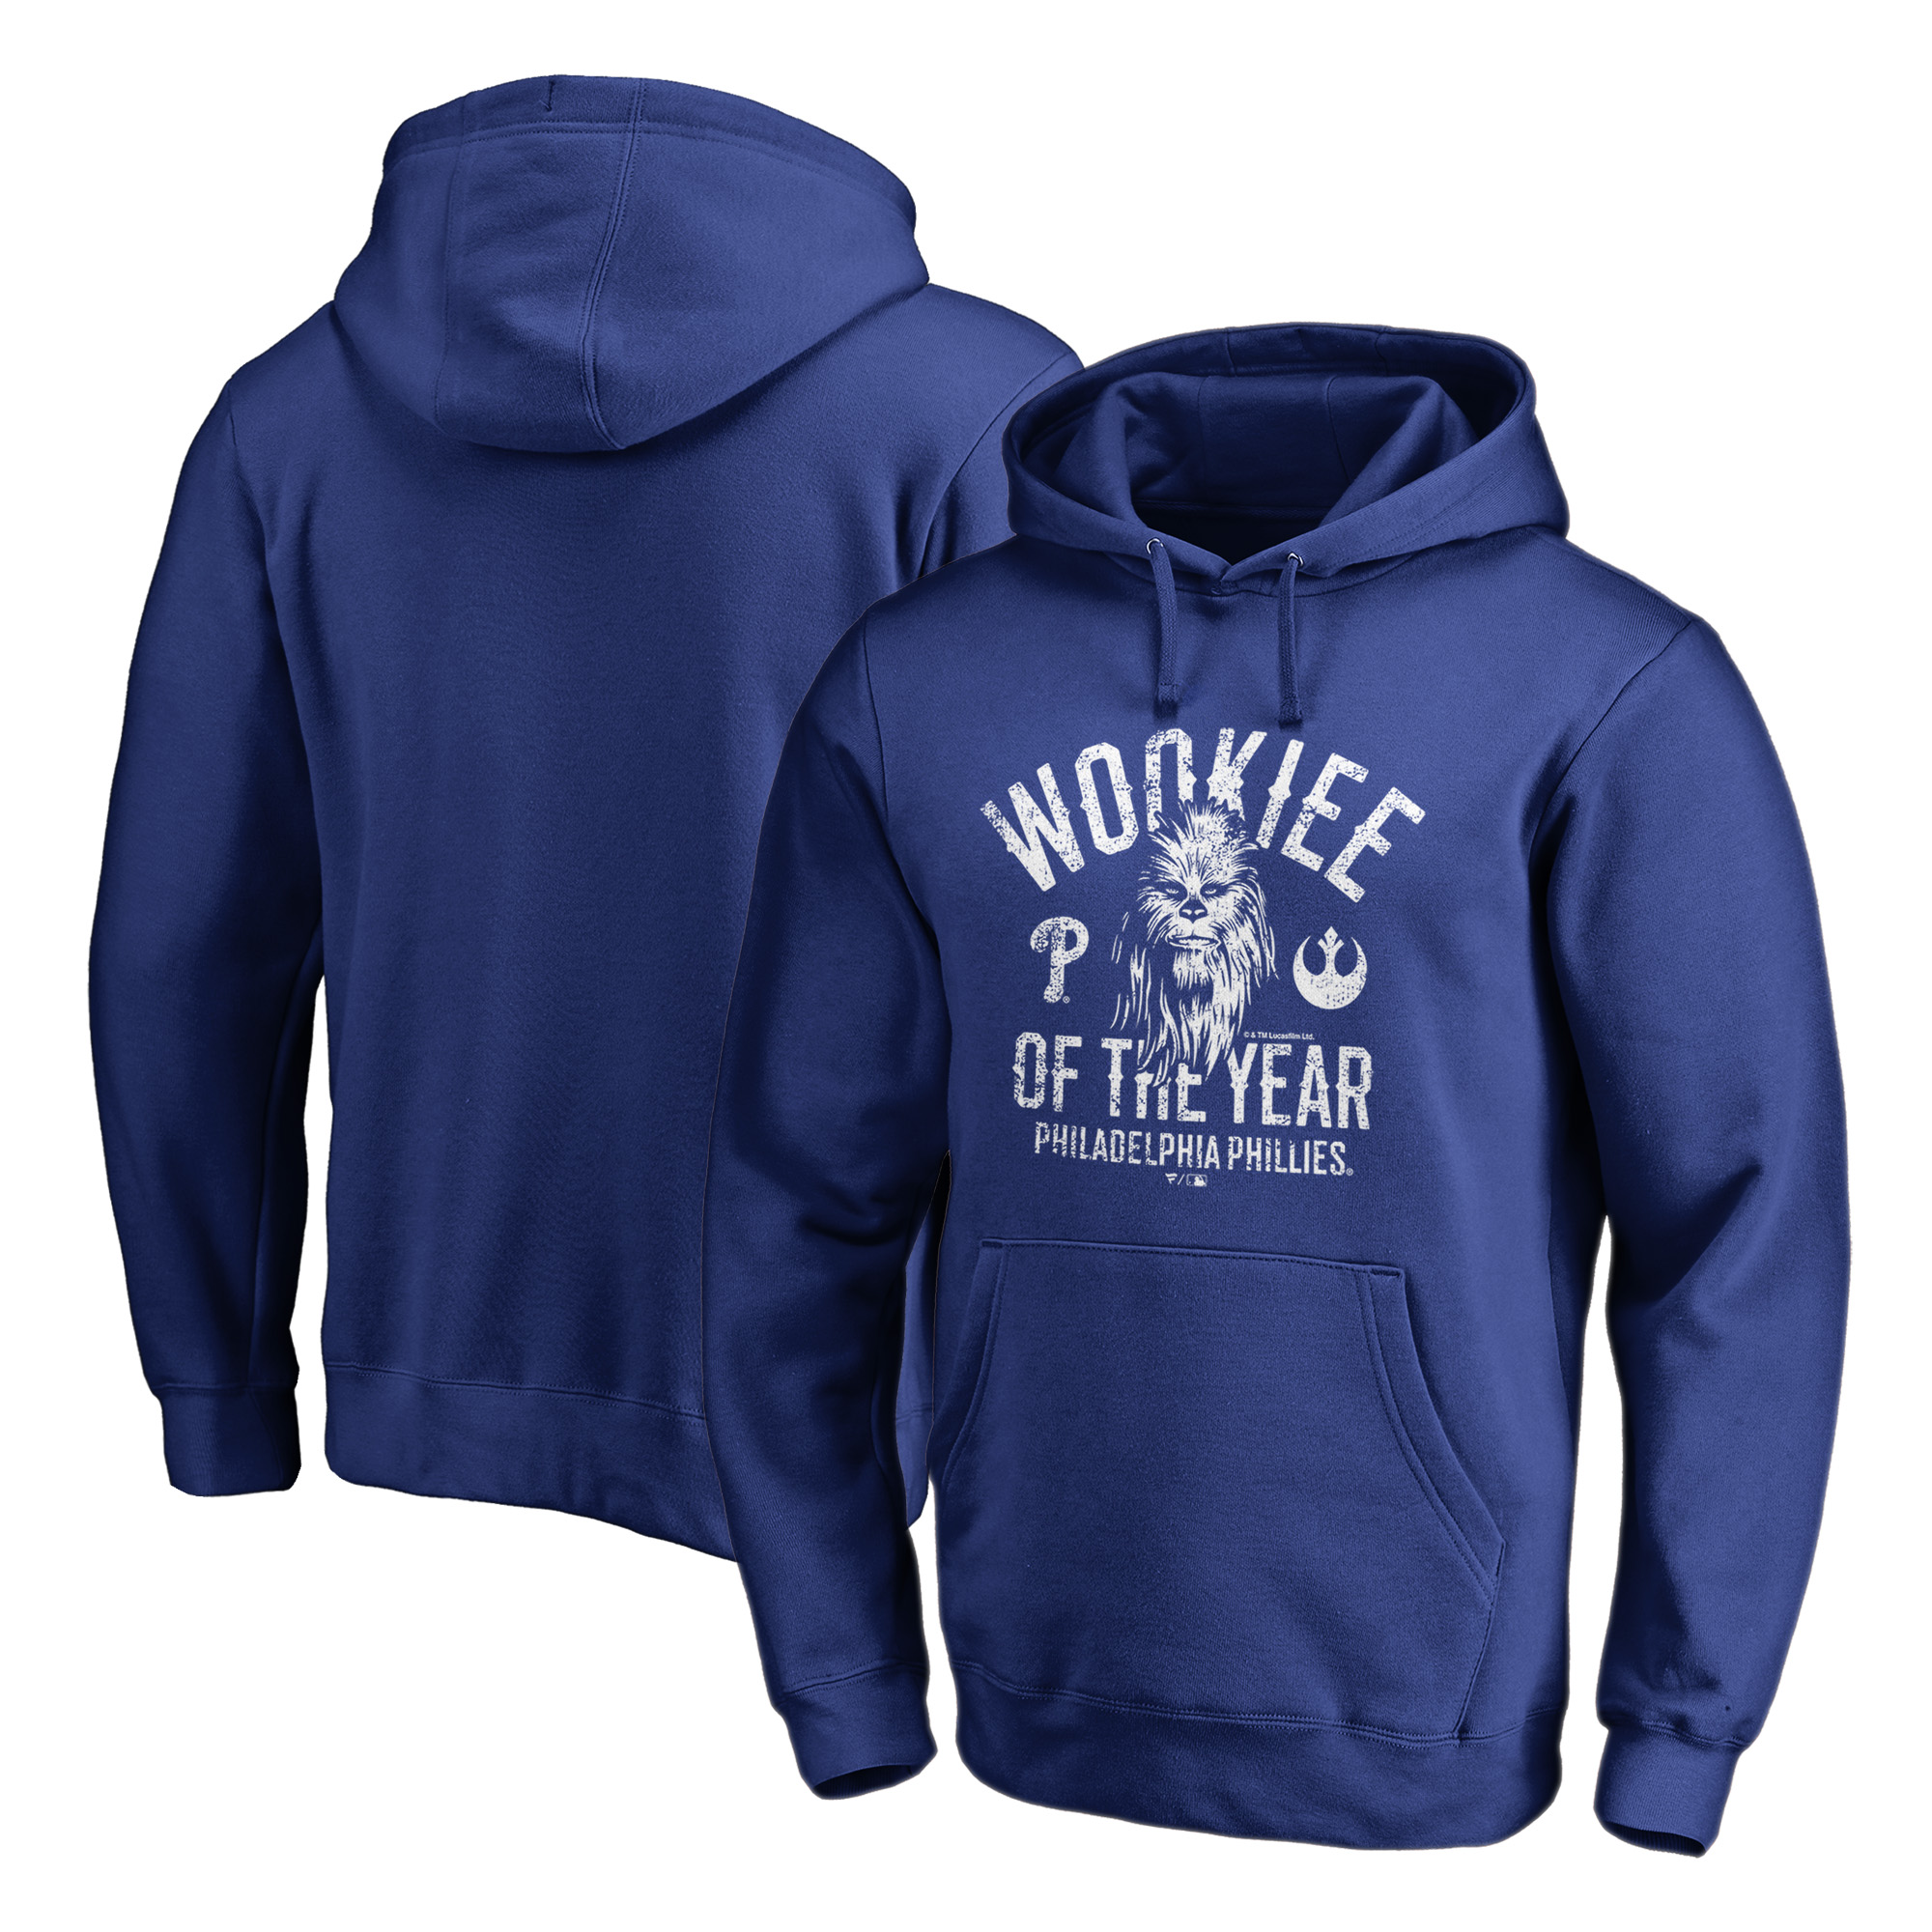 Philadelphia Phillies Fanatics Branded Star Wars Wookiee Of The Year Pullover Hoodie - Royal